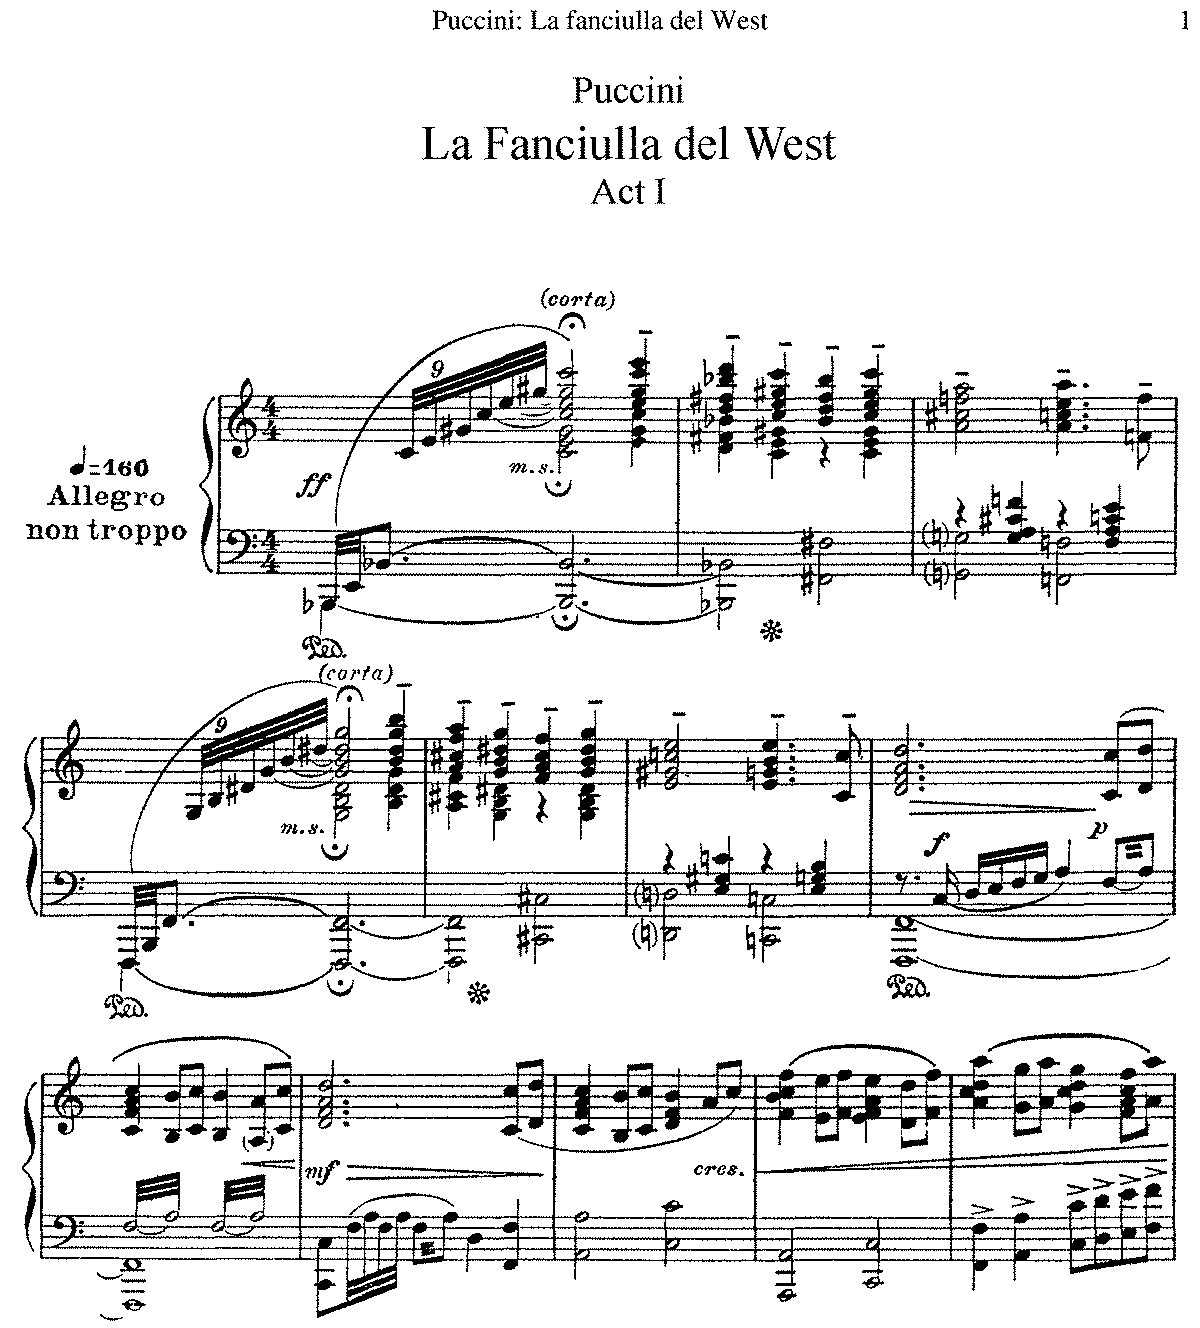 PMLP53310-Puccini - La Fanciulla del West (vocal score).pdf